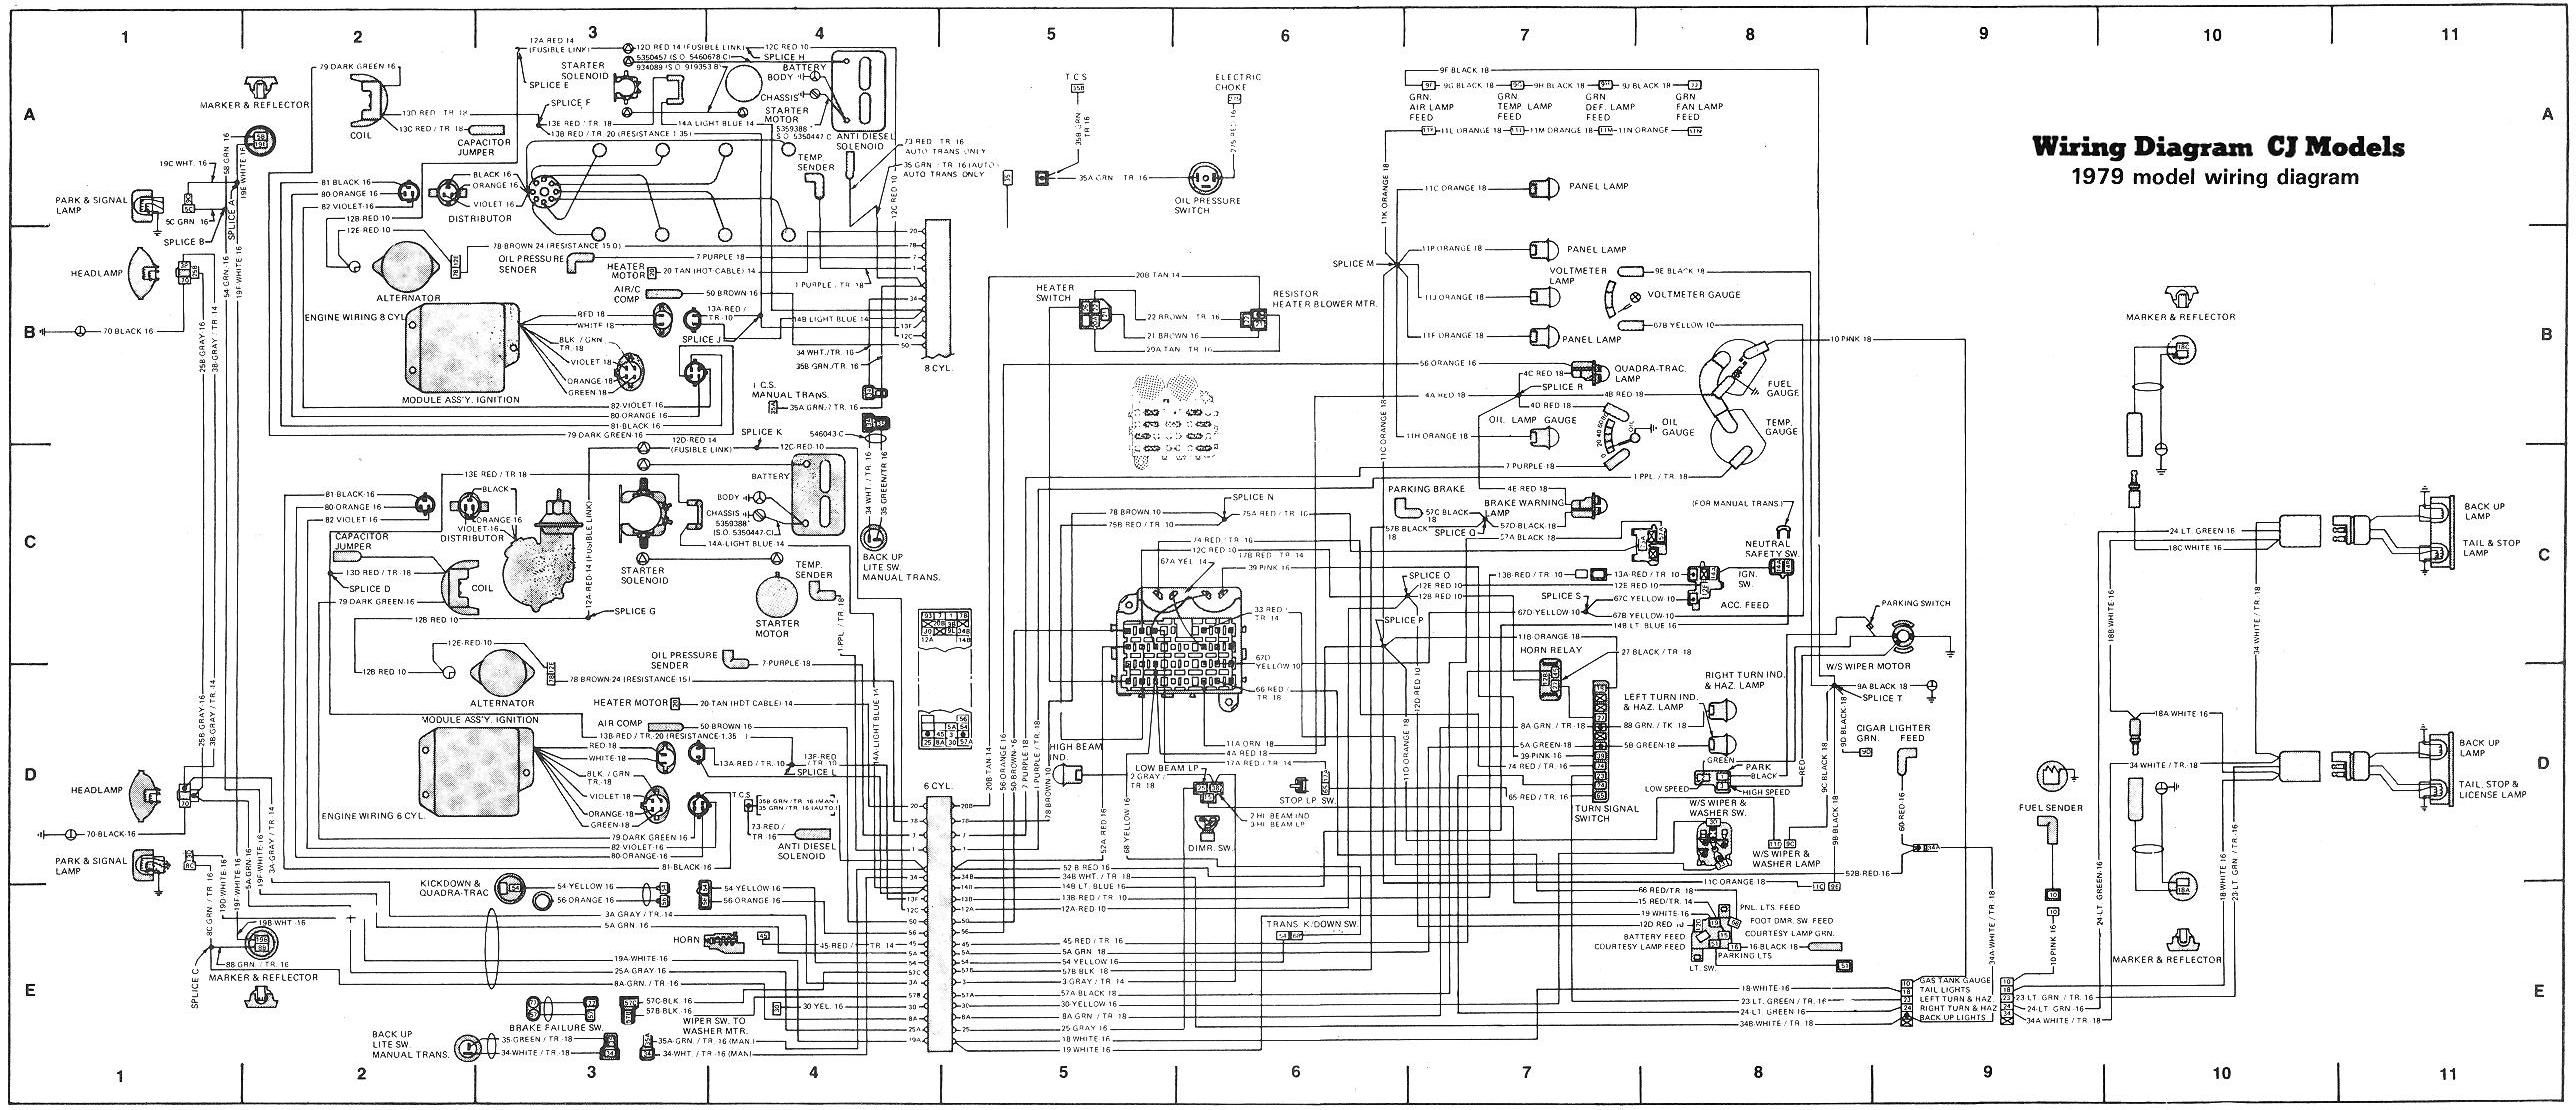 wiring diagram of jeep wiring wiring diagrams jeep kj wiring diagram jeep wiring diagrams